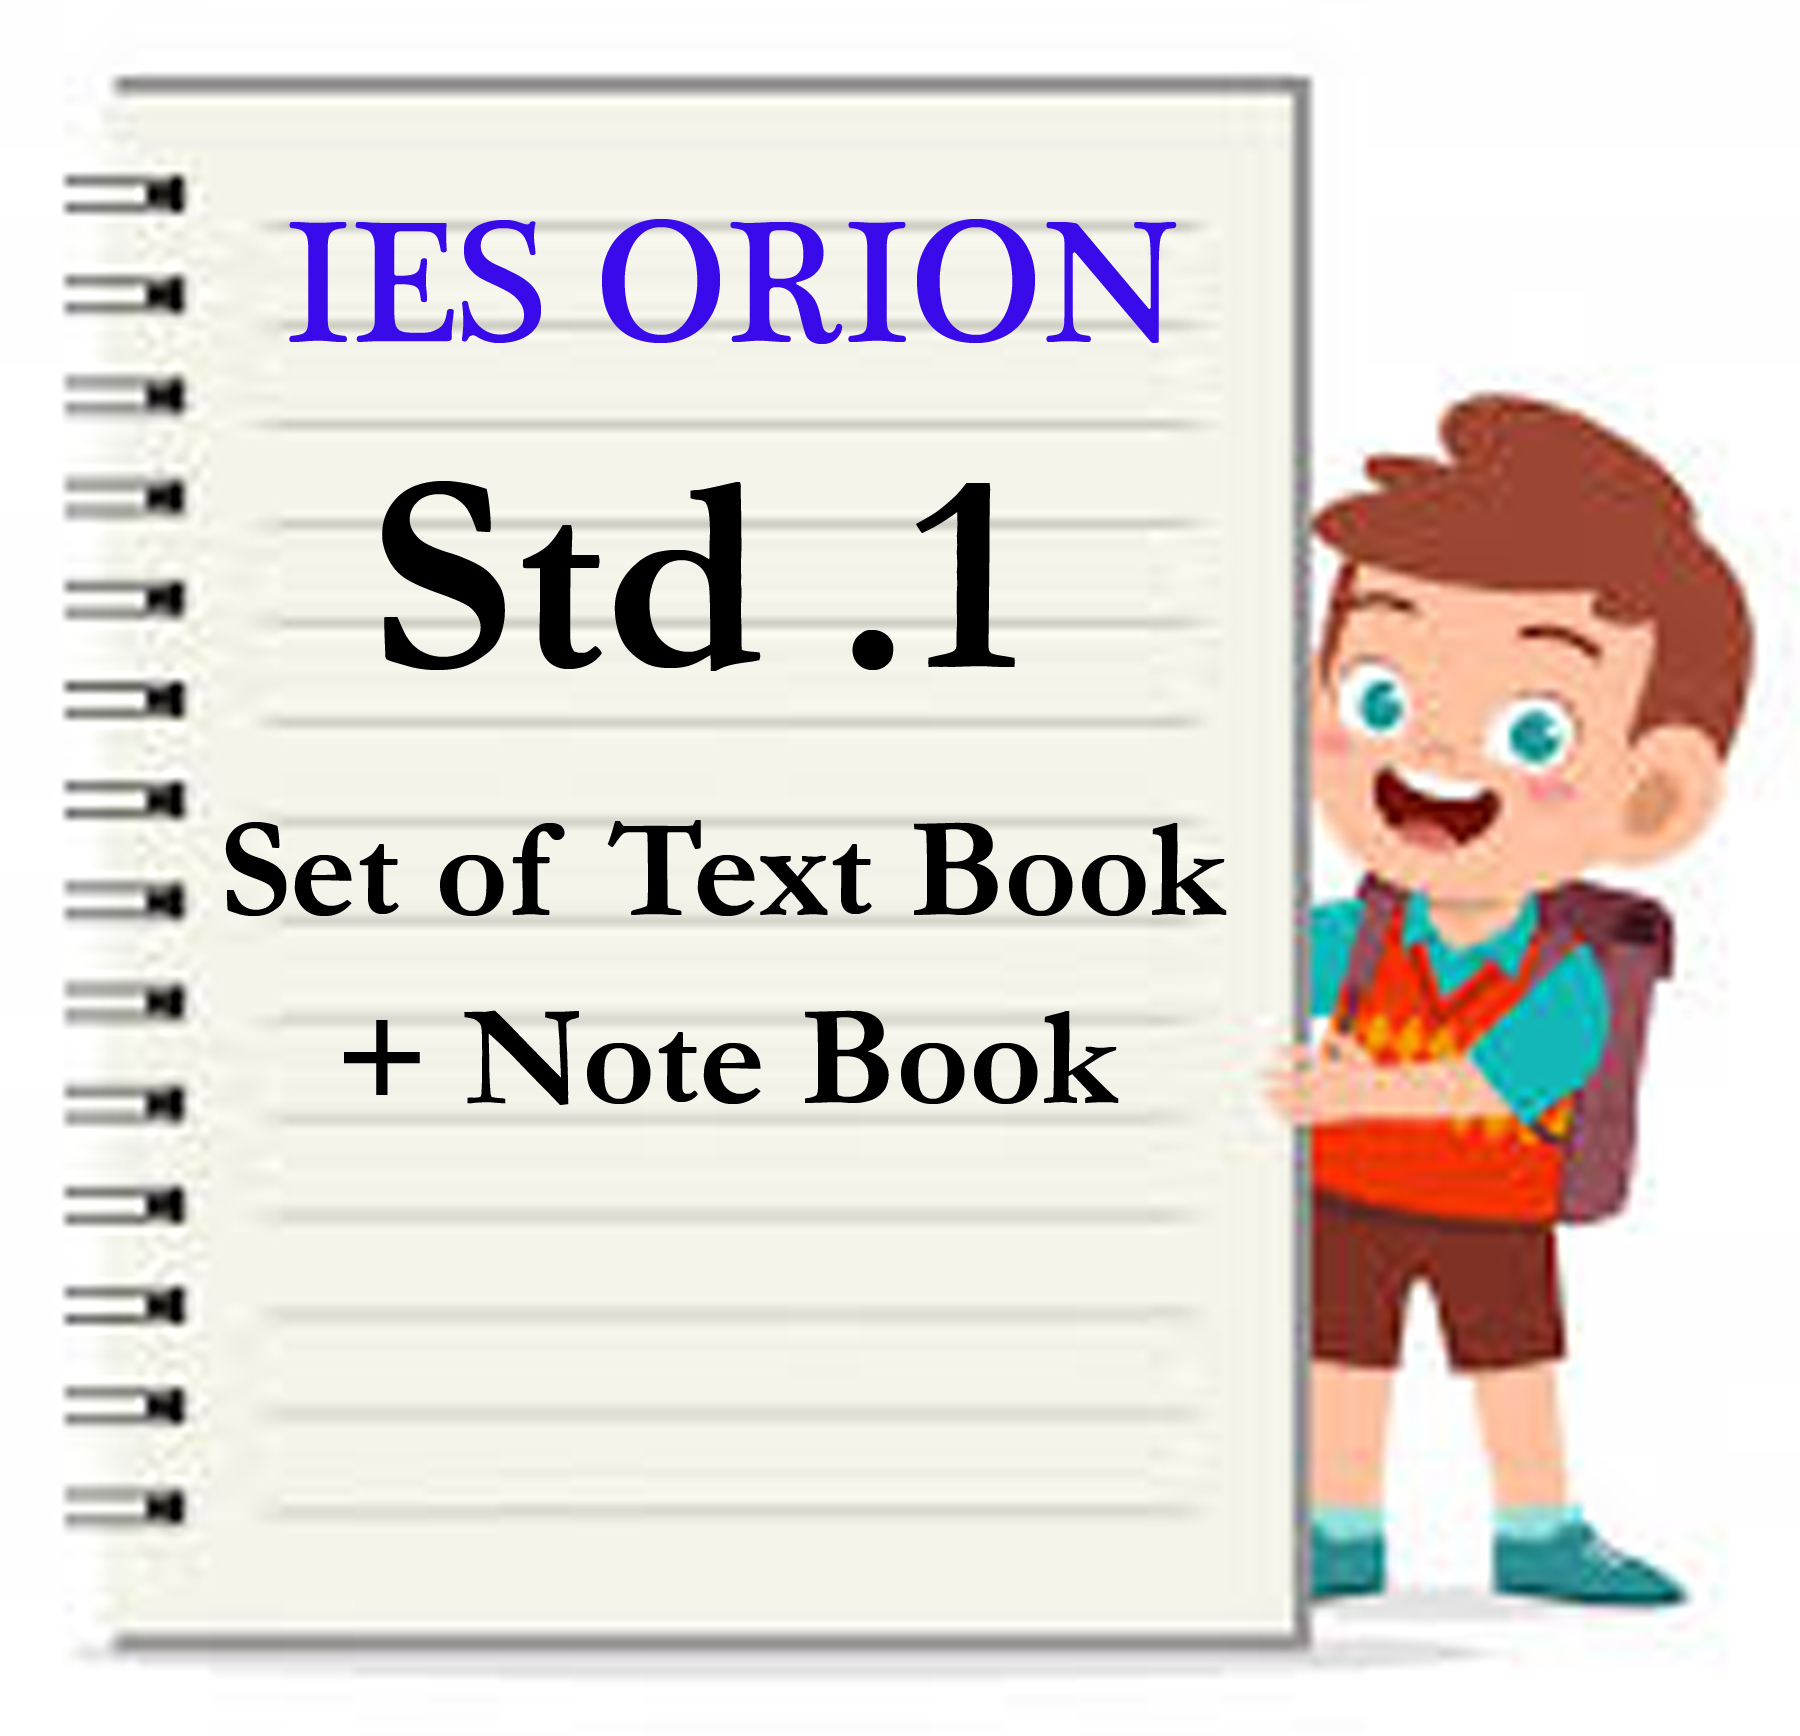 IES ORION STD.1 SET OF TEXT BOOK + NOTE BOOK